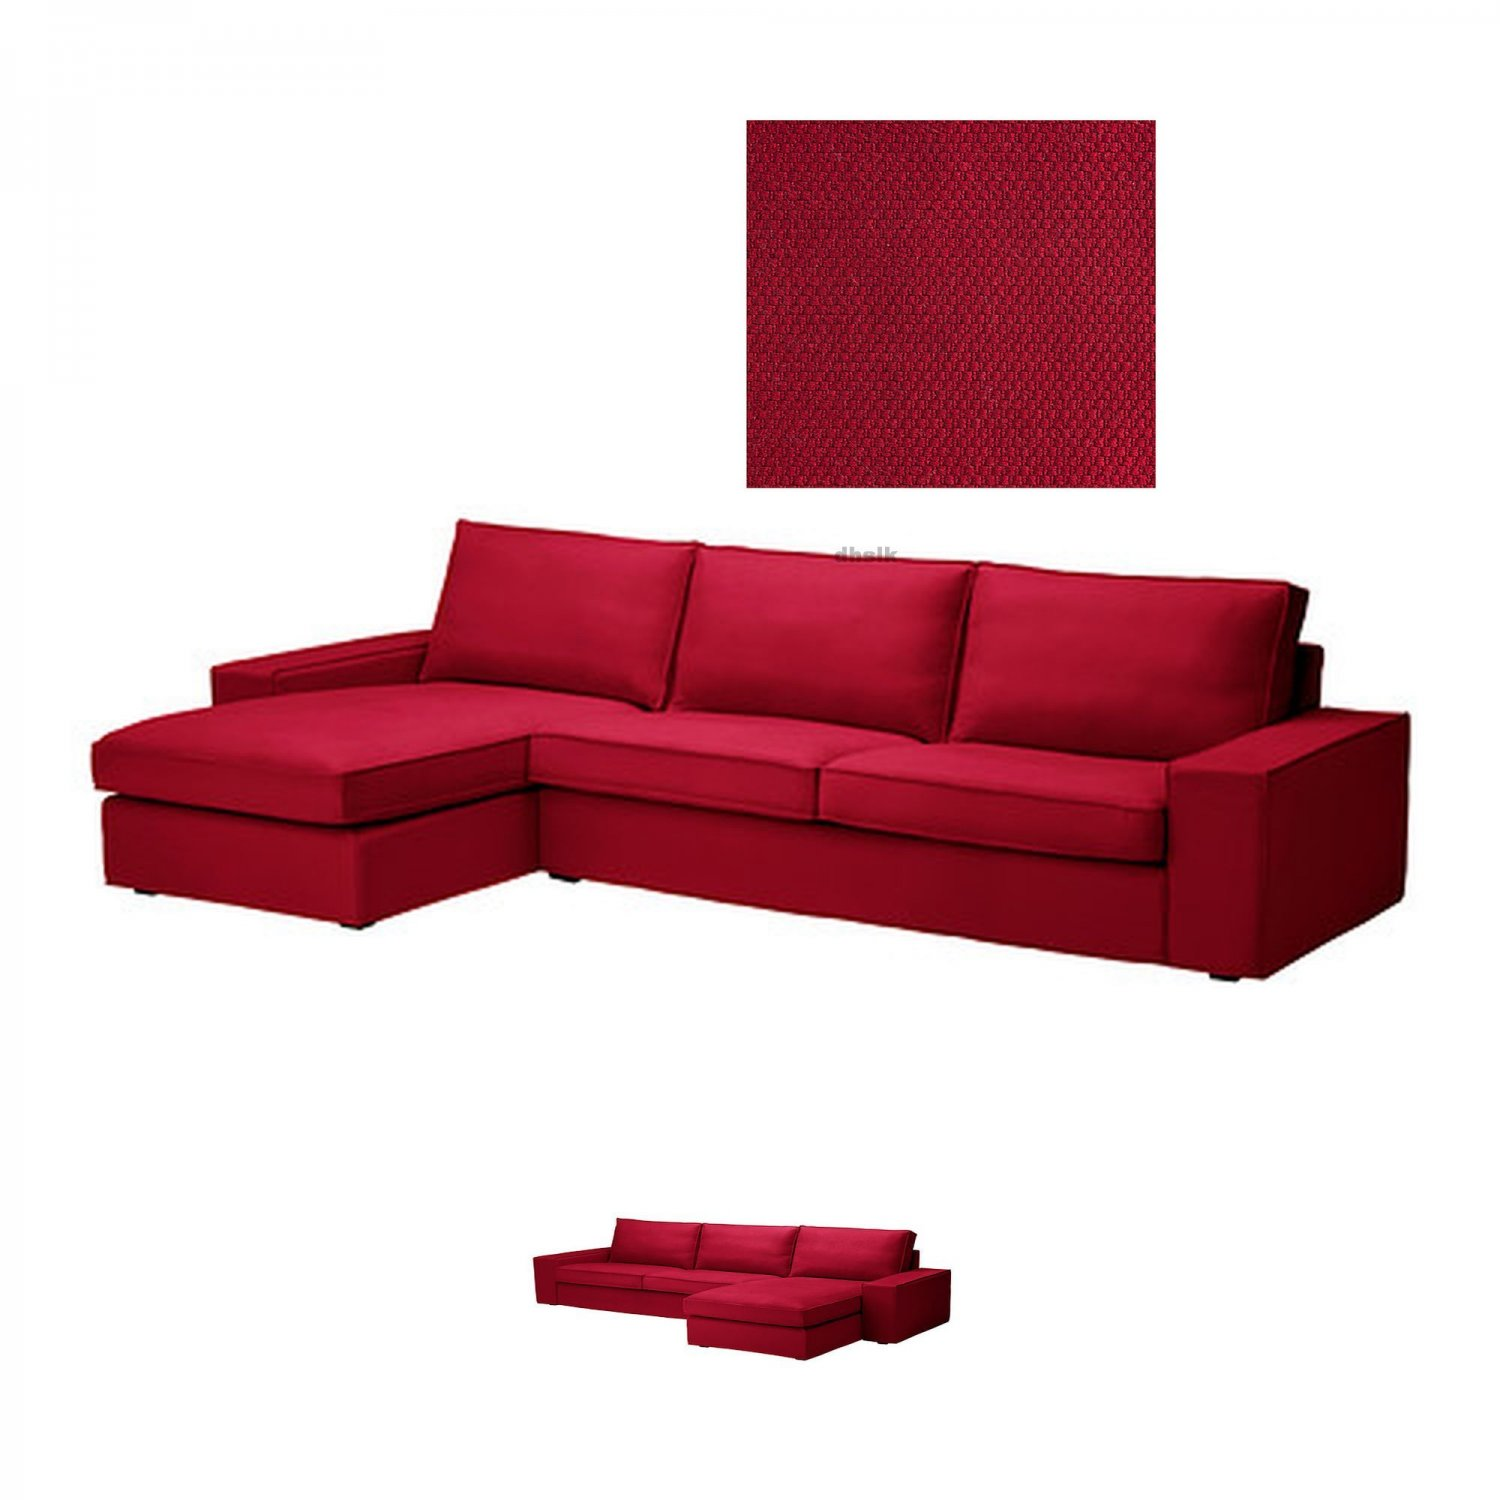 IKEA KIVIK 3 Seat Sofa W Chaise Longue SLIPCOVER Cover DANSBO MEDIUM RED